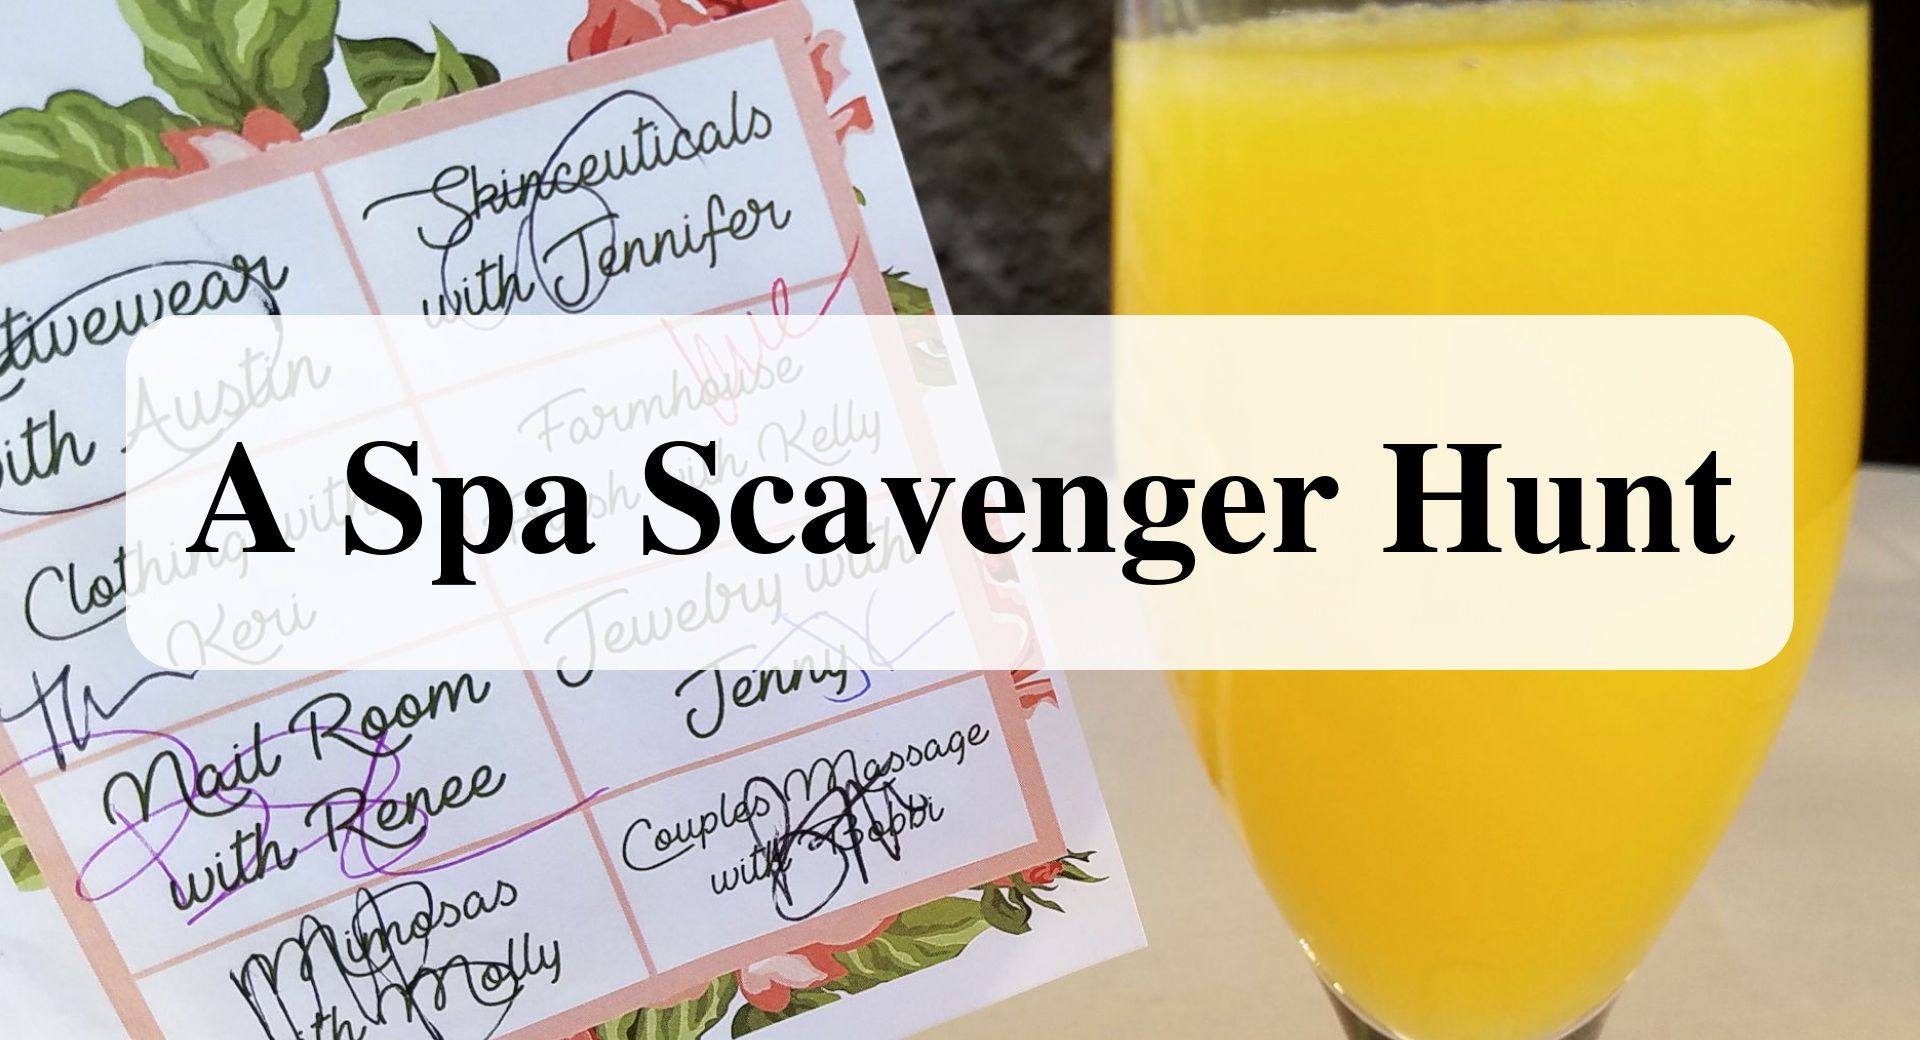 A Spa Scavenger Hunt main